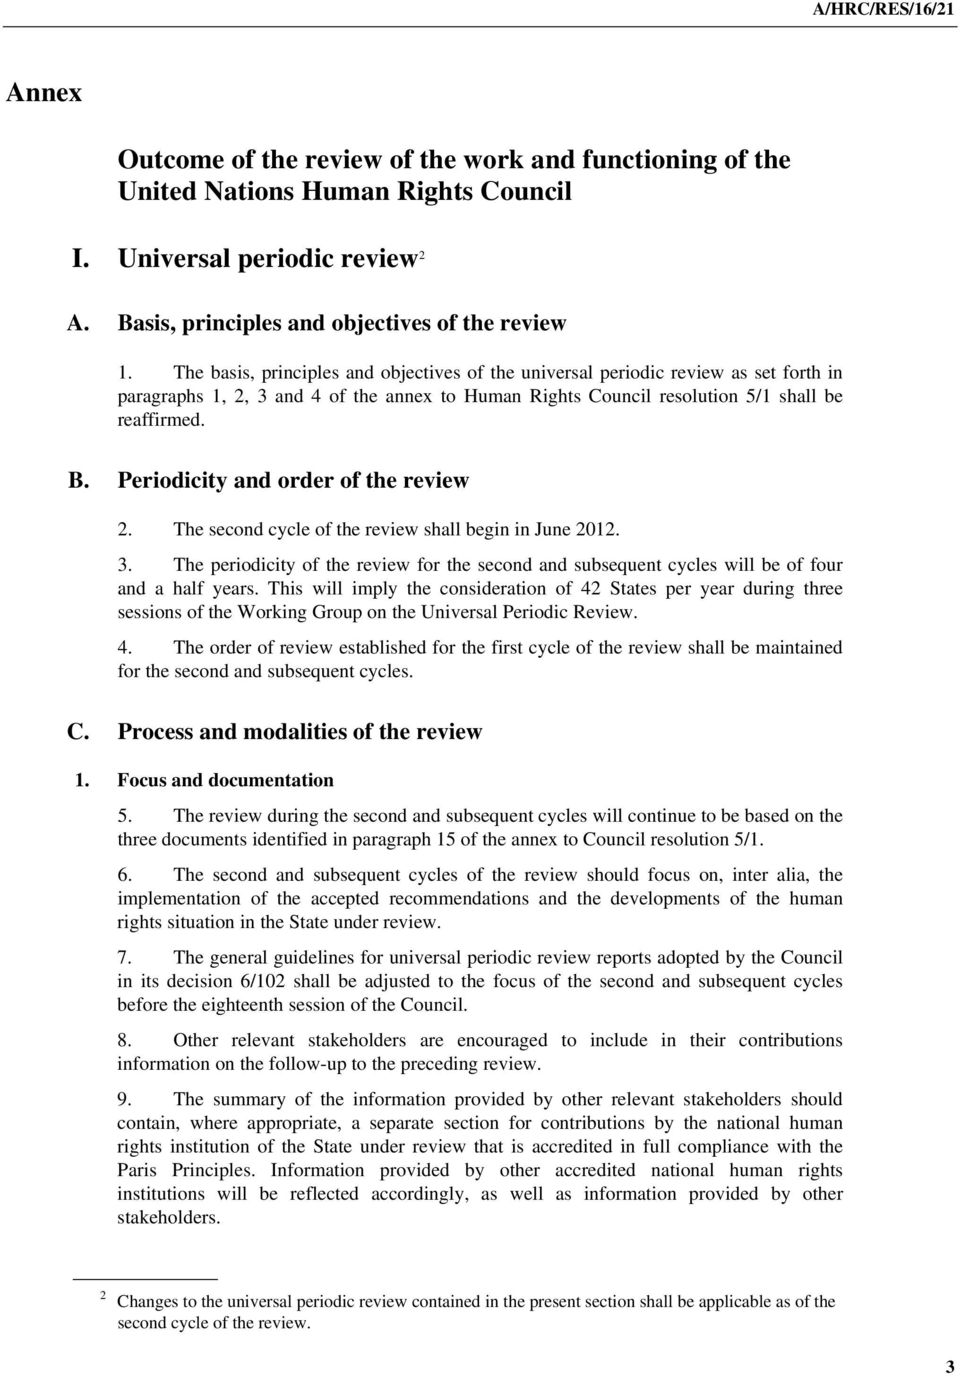 Periodicity and order of the review 2. The second cycle of the review shall begin in June 2012. 3. The periodicity of the review for the second and subsequent cycles will be of four and a half years.